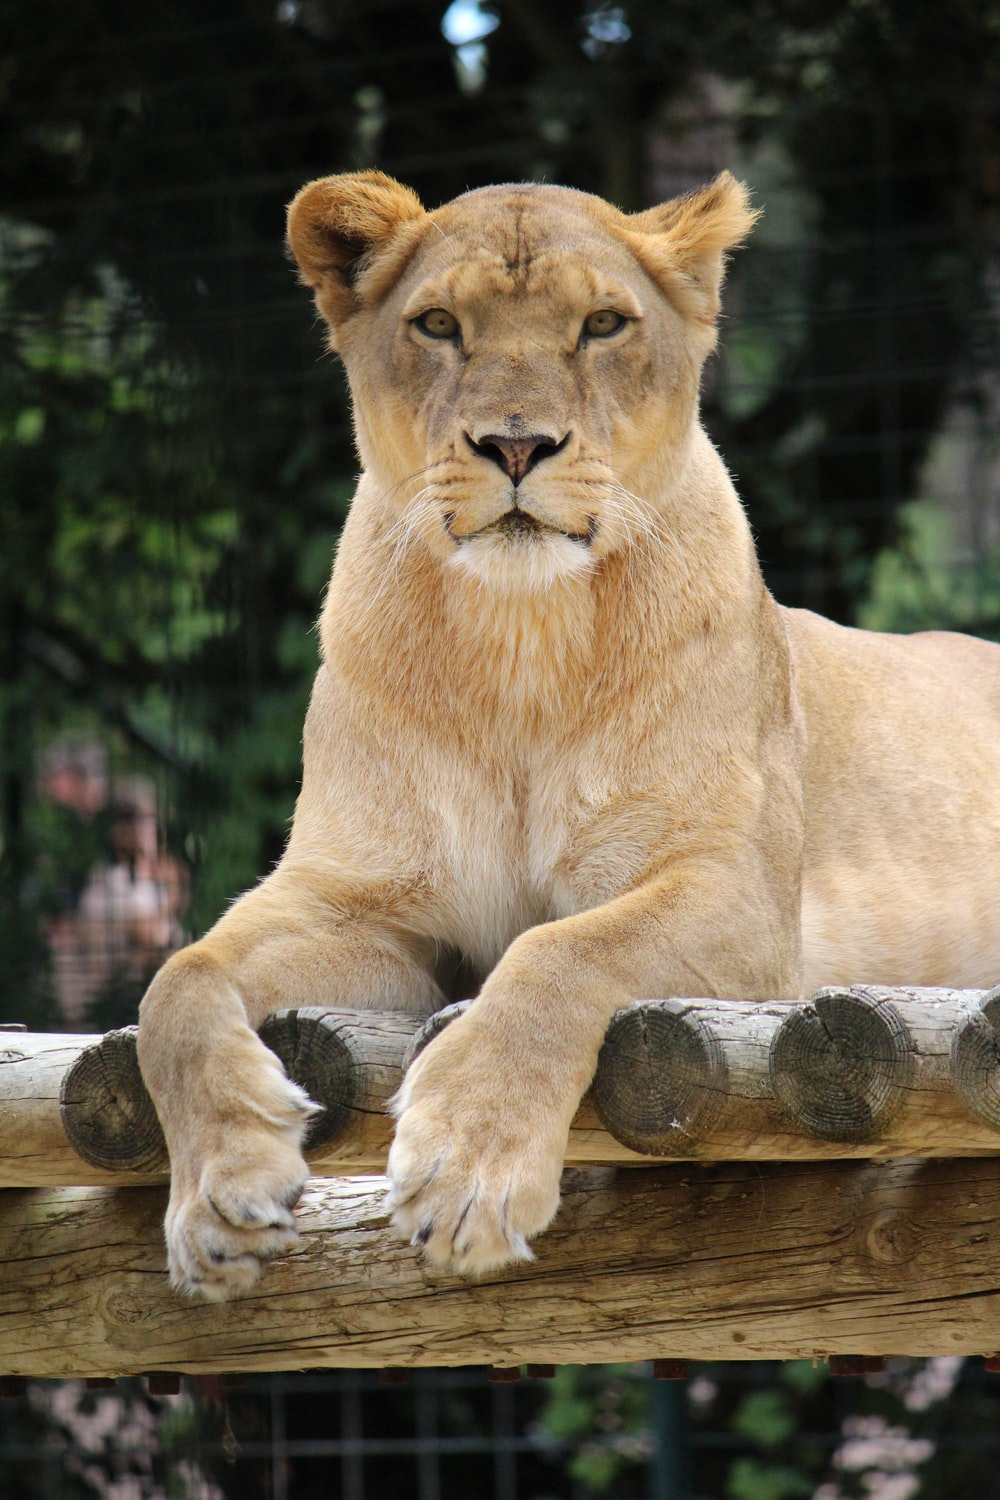 lioness reclining on wood